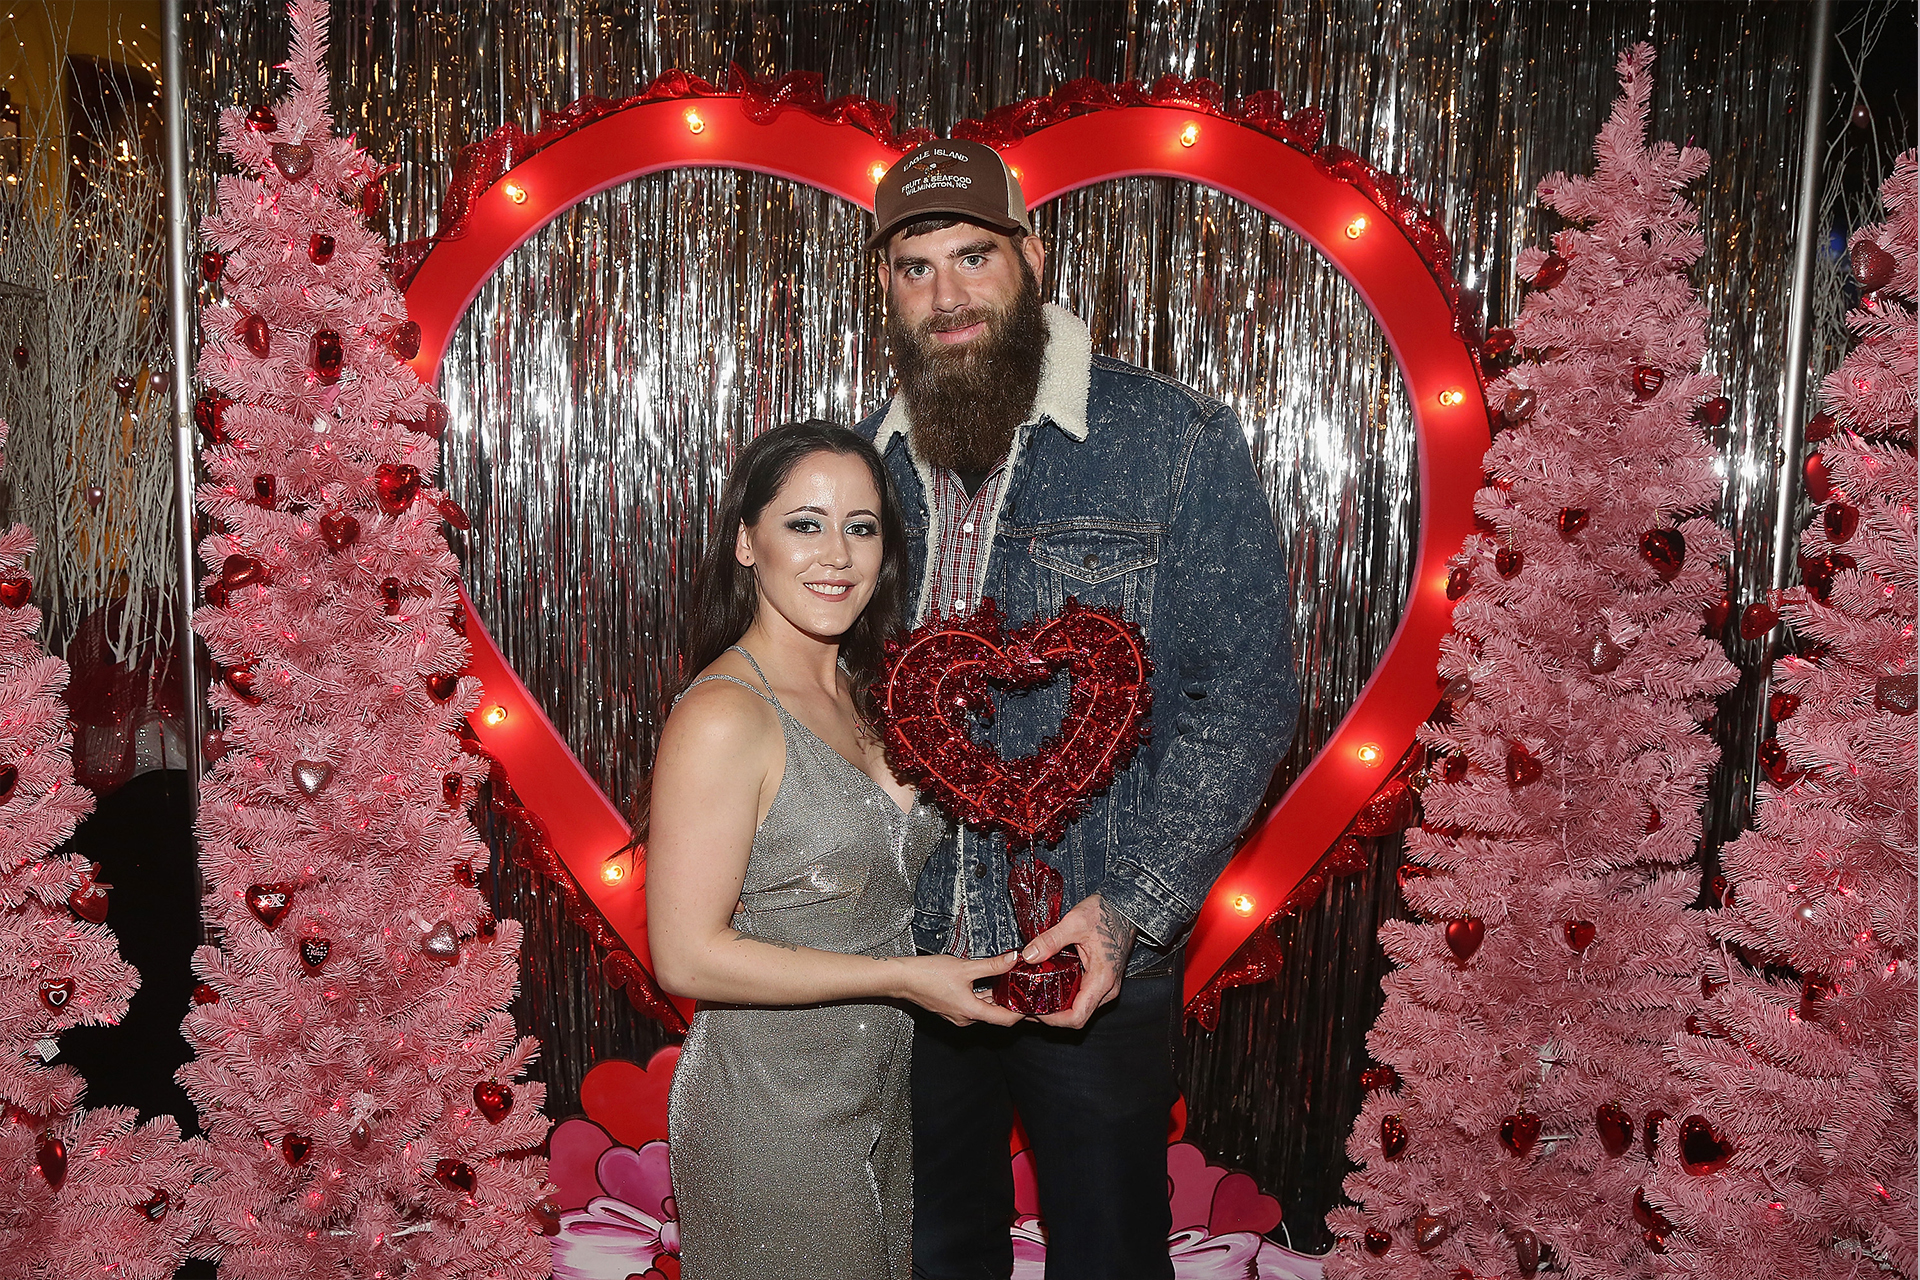 People Now: Exclusive: Jenelle Evans and David Eason Give Marriage Update - Watch the Full Episode